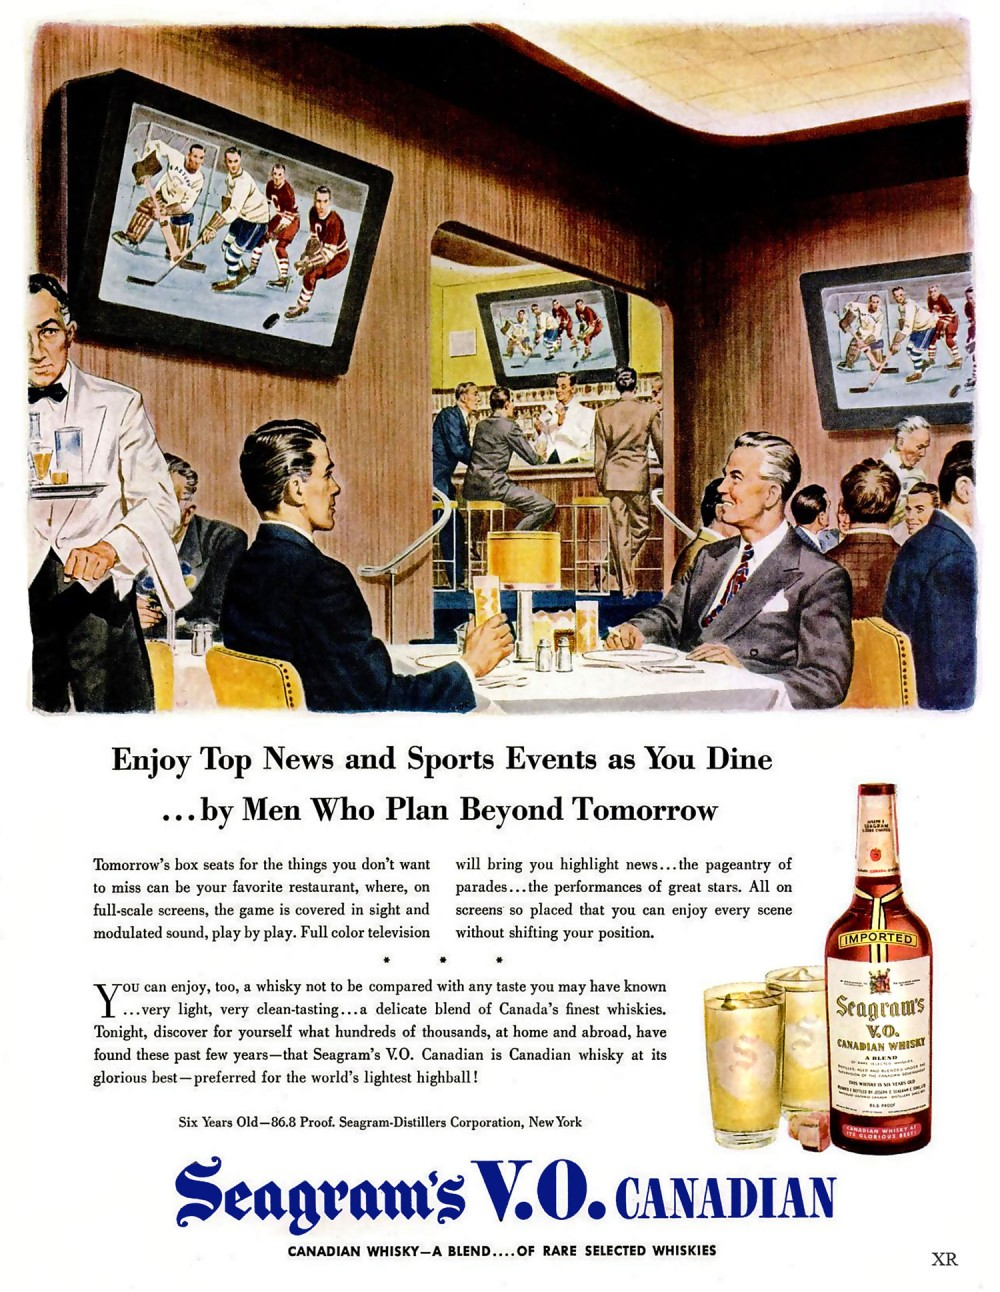 1946 - MWPBT Enjoy Top News and Sports